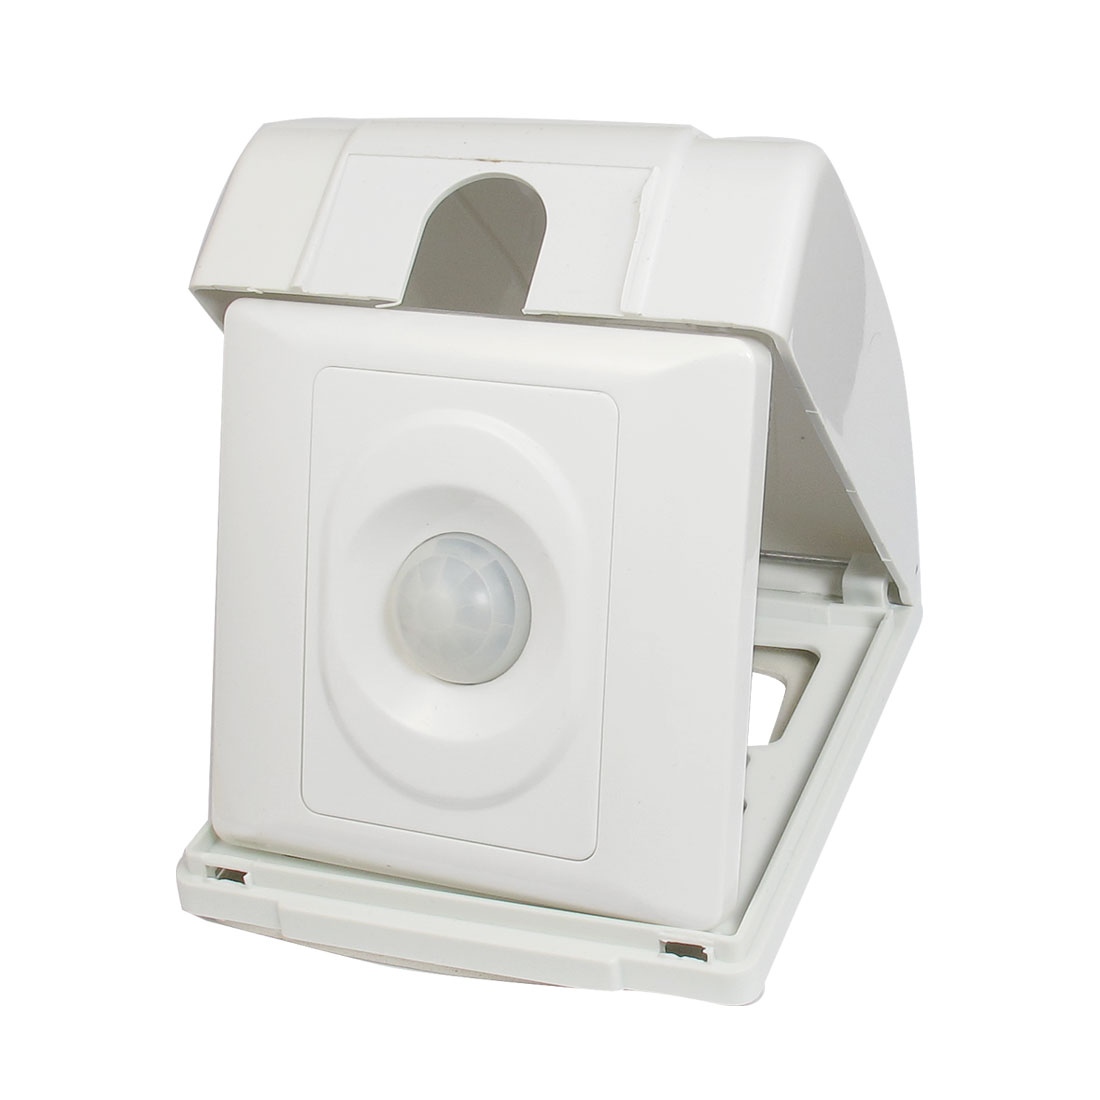 AC 180-250V 50Hz 115 Degree 25-100W Load PIR Motion Sensor Switch w White Cover